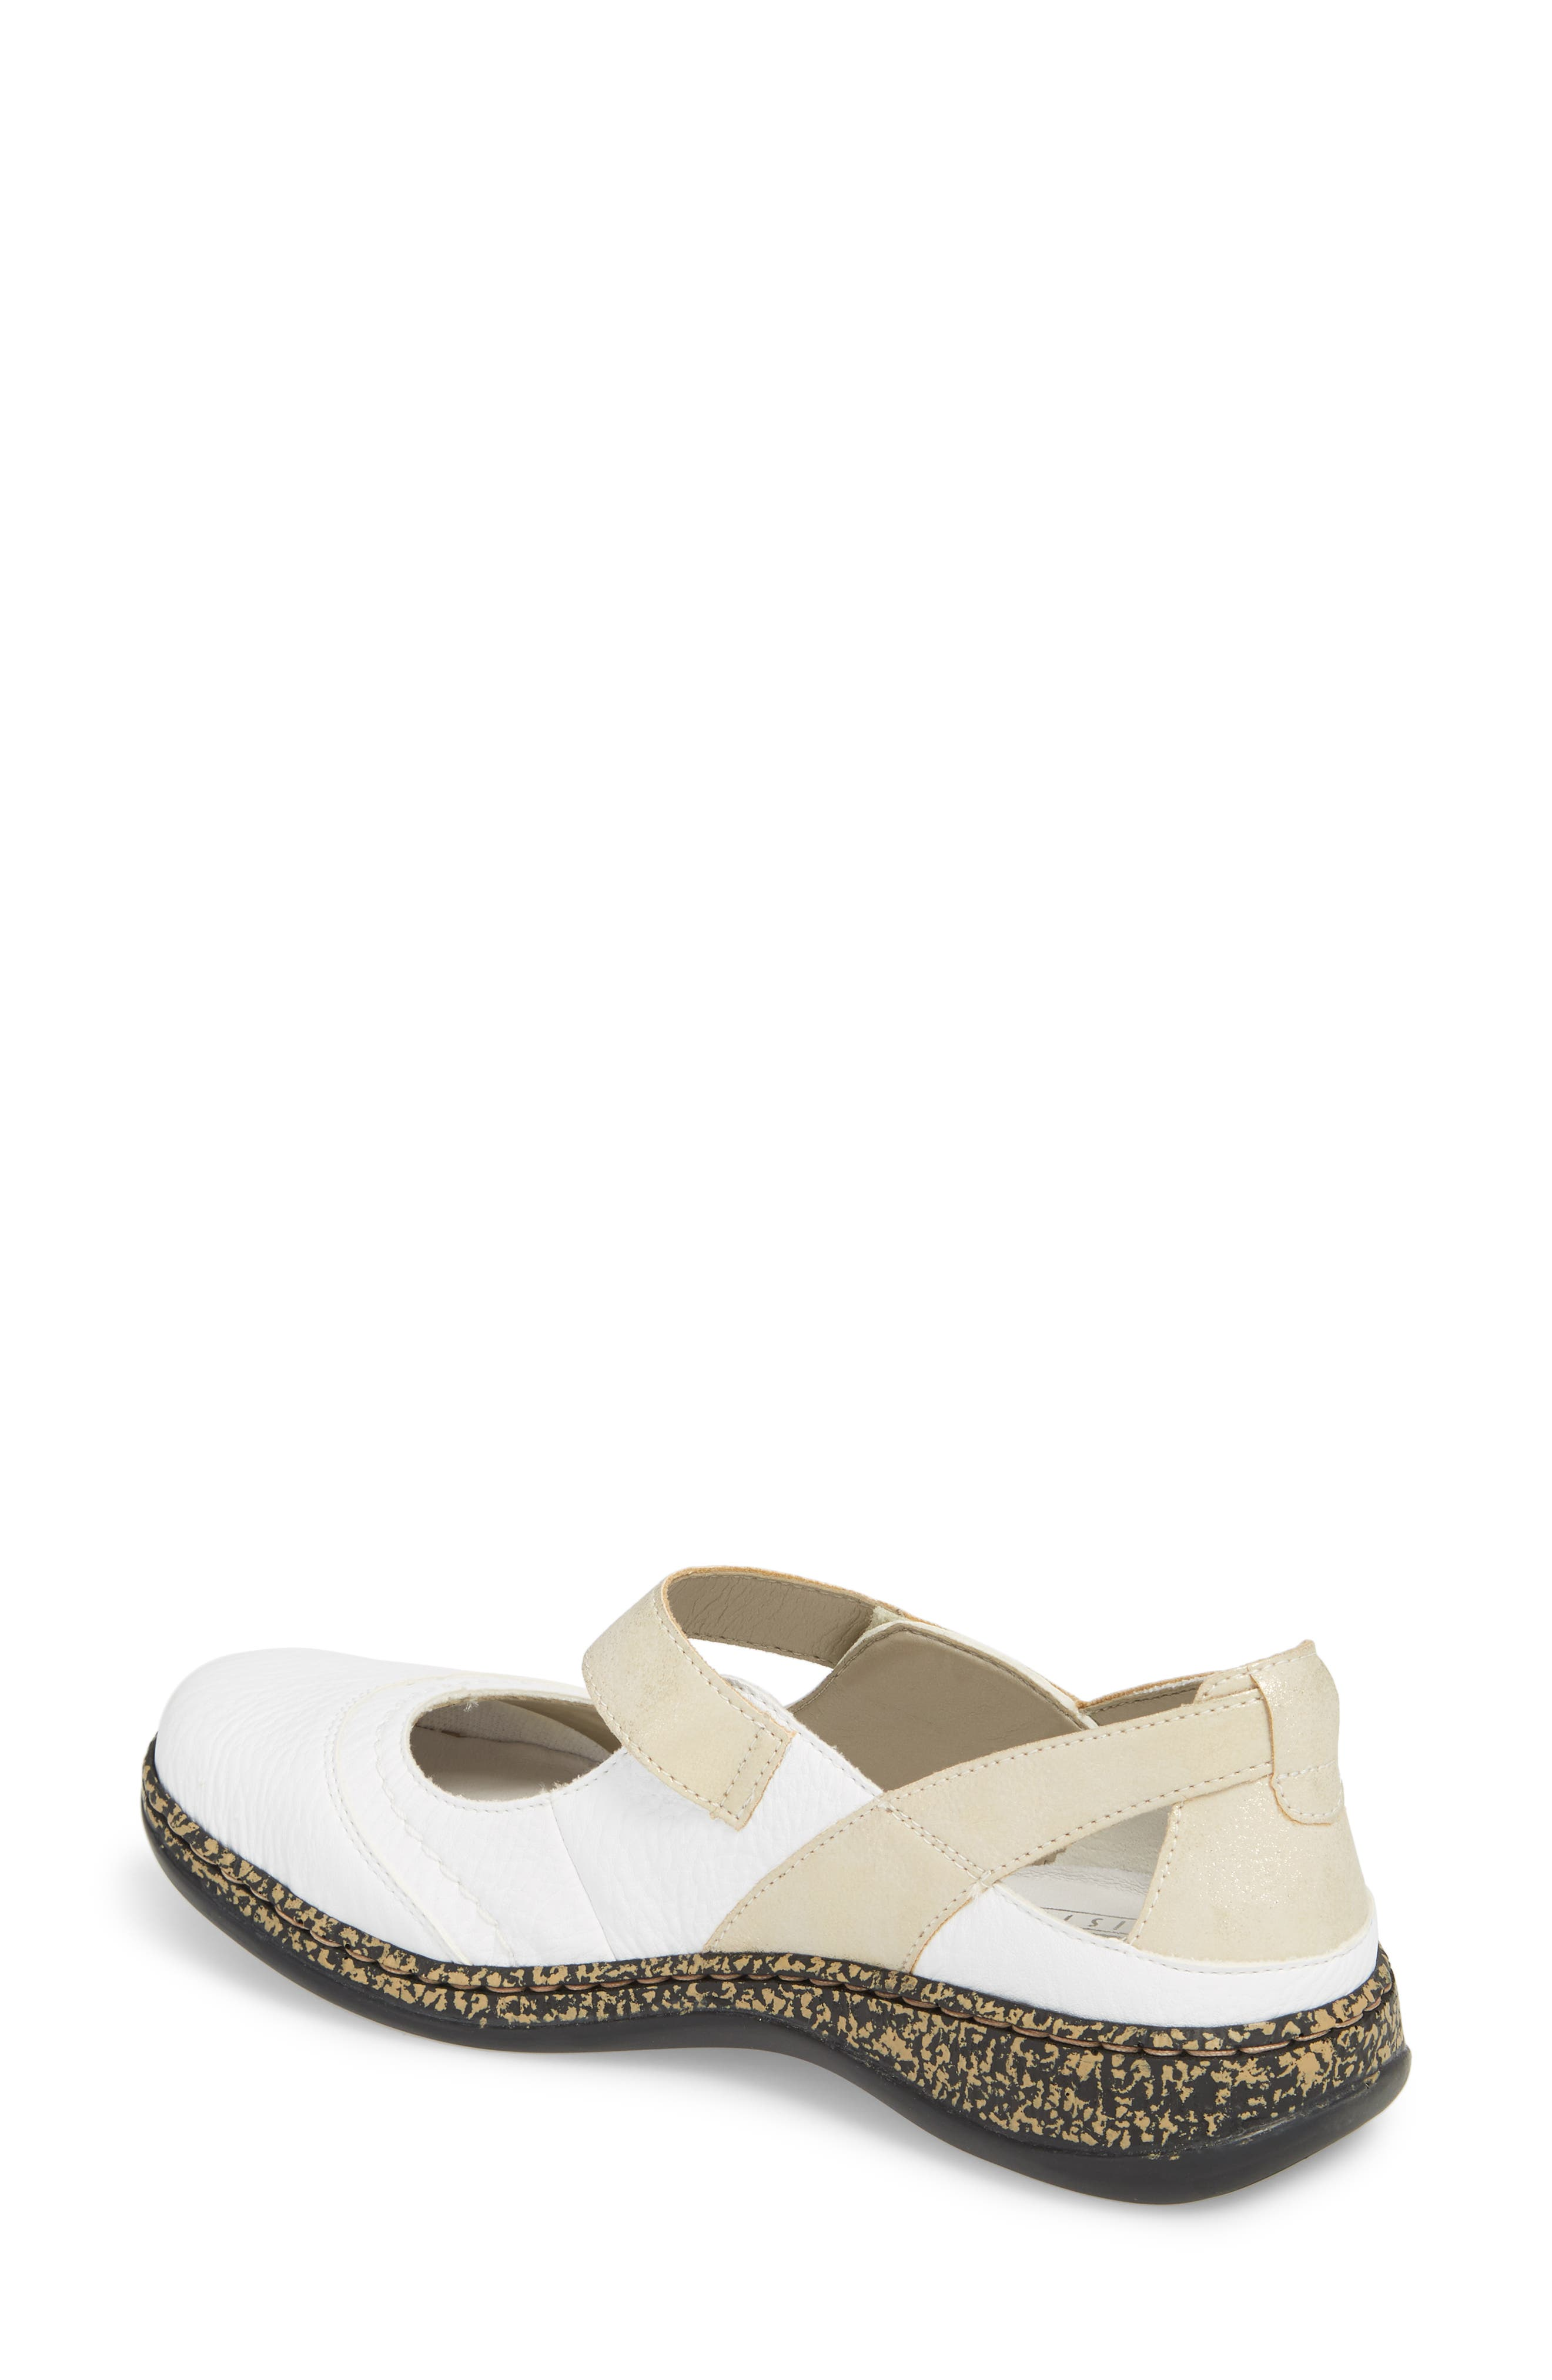 Daisy 78 Mary Jane Flat,                             Alternate thumbnail 2, color,                             WHITE/ GOLD SYNTHETIC LEATHER